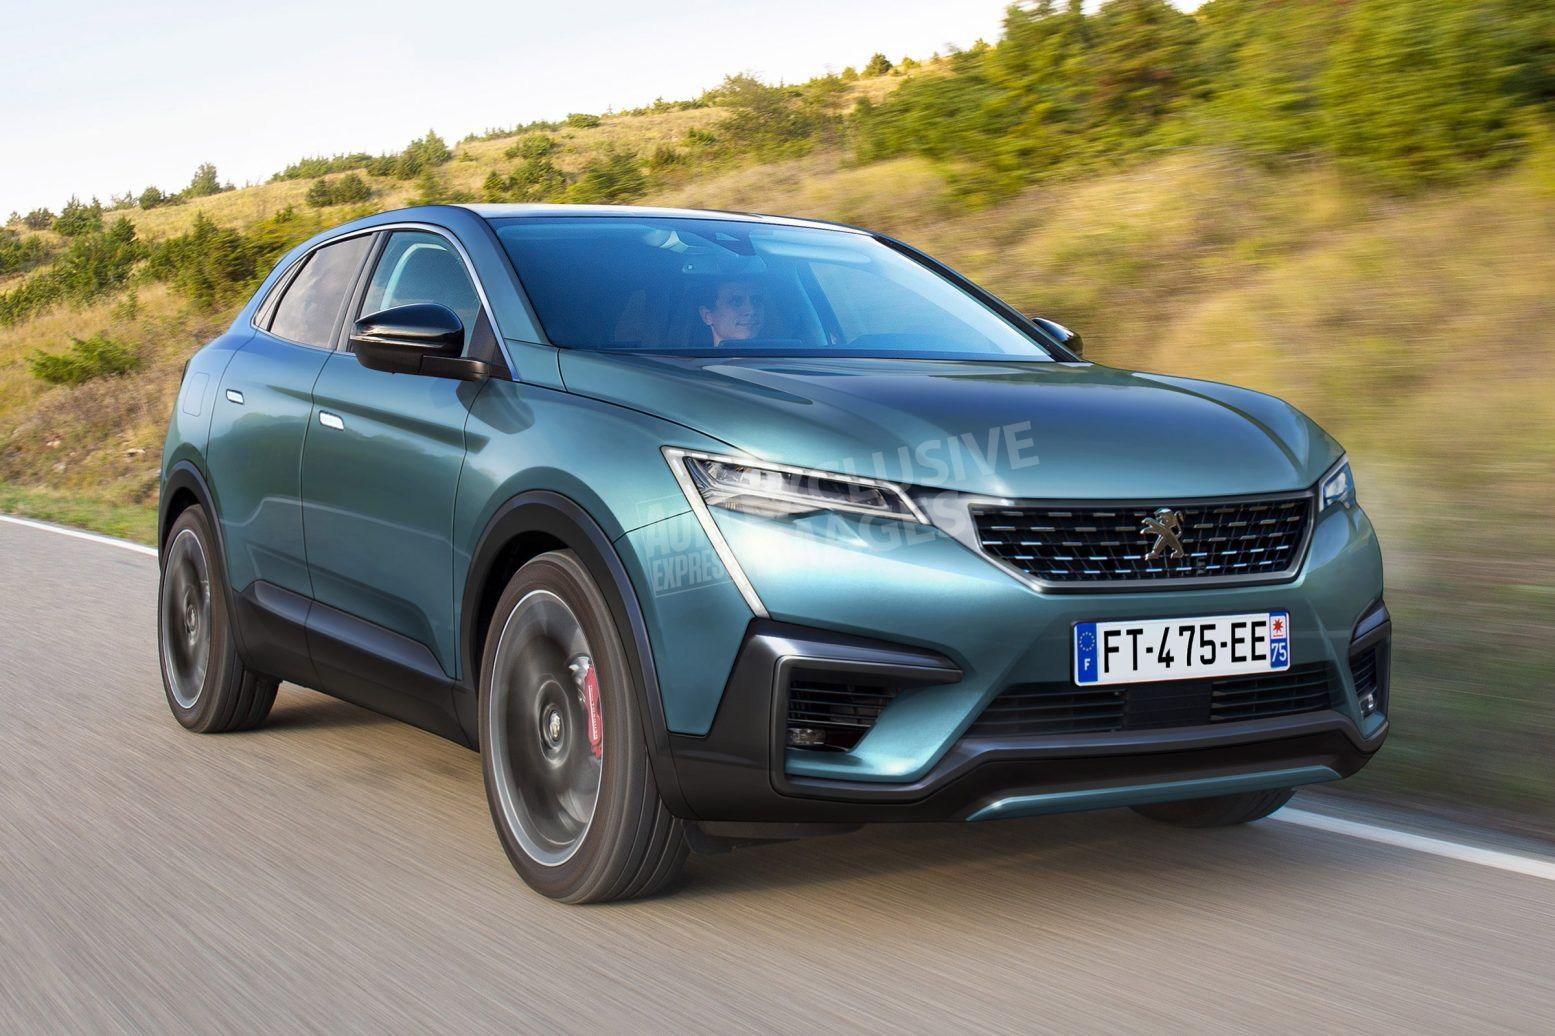 2020 Peugeot 2008 Review, Interior, Engine, Release Date